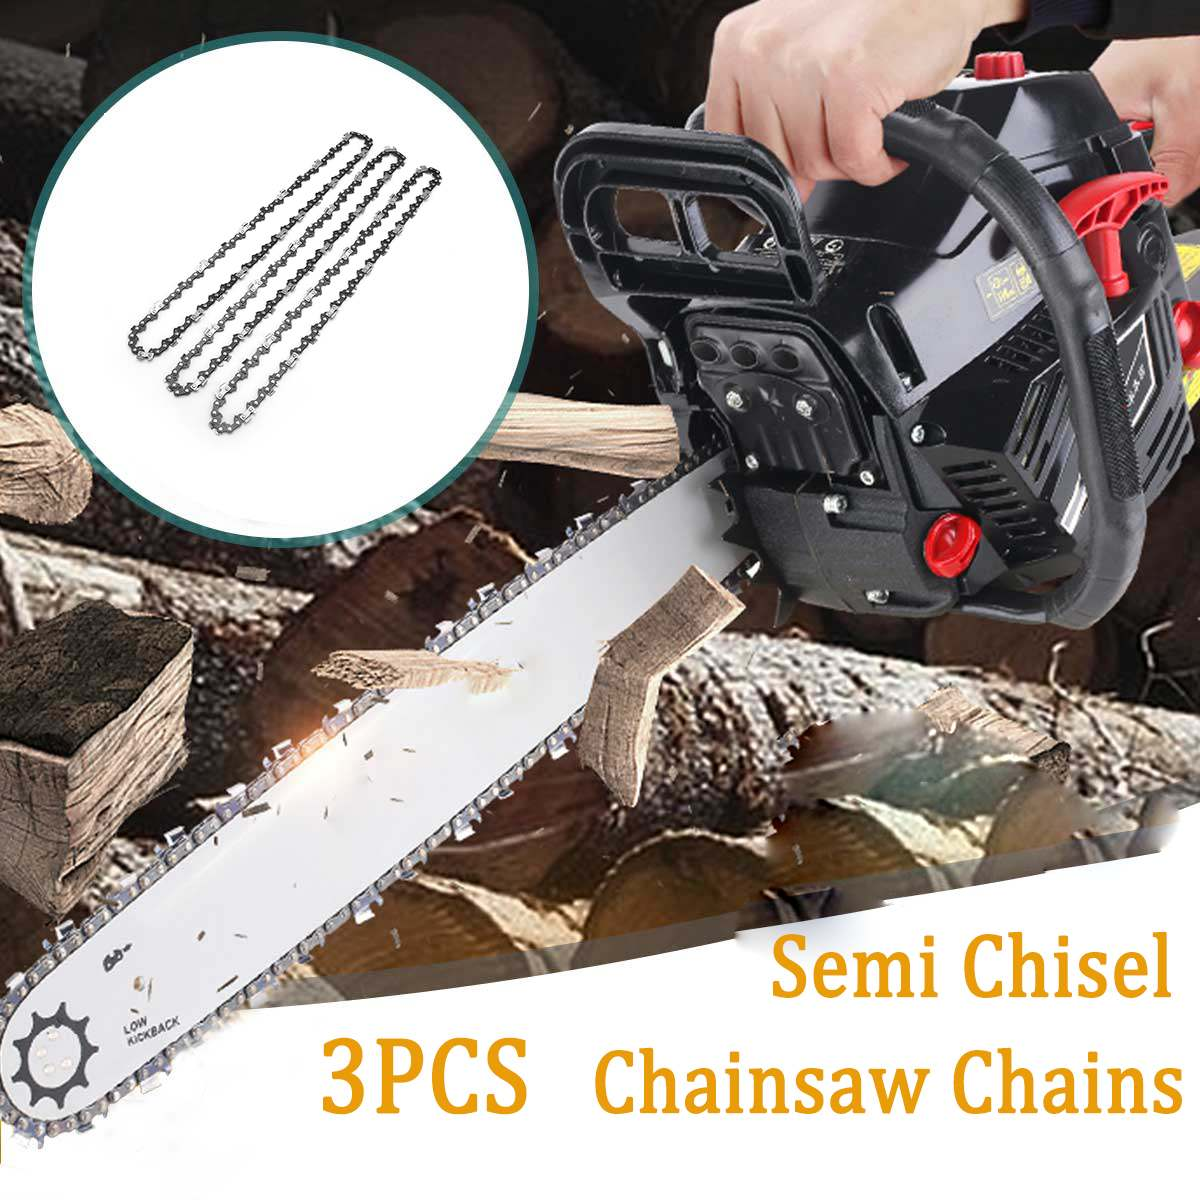 3pcs/set Chainsaw Semi Chisel Chains 3/8LP 0.05 For Stihl MS170 MS171 MS180 <font><b>MS181</b></font> Electric Saw Garden Power Tools Chainsaws image